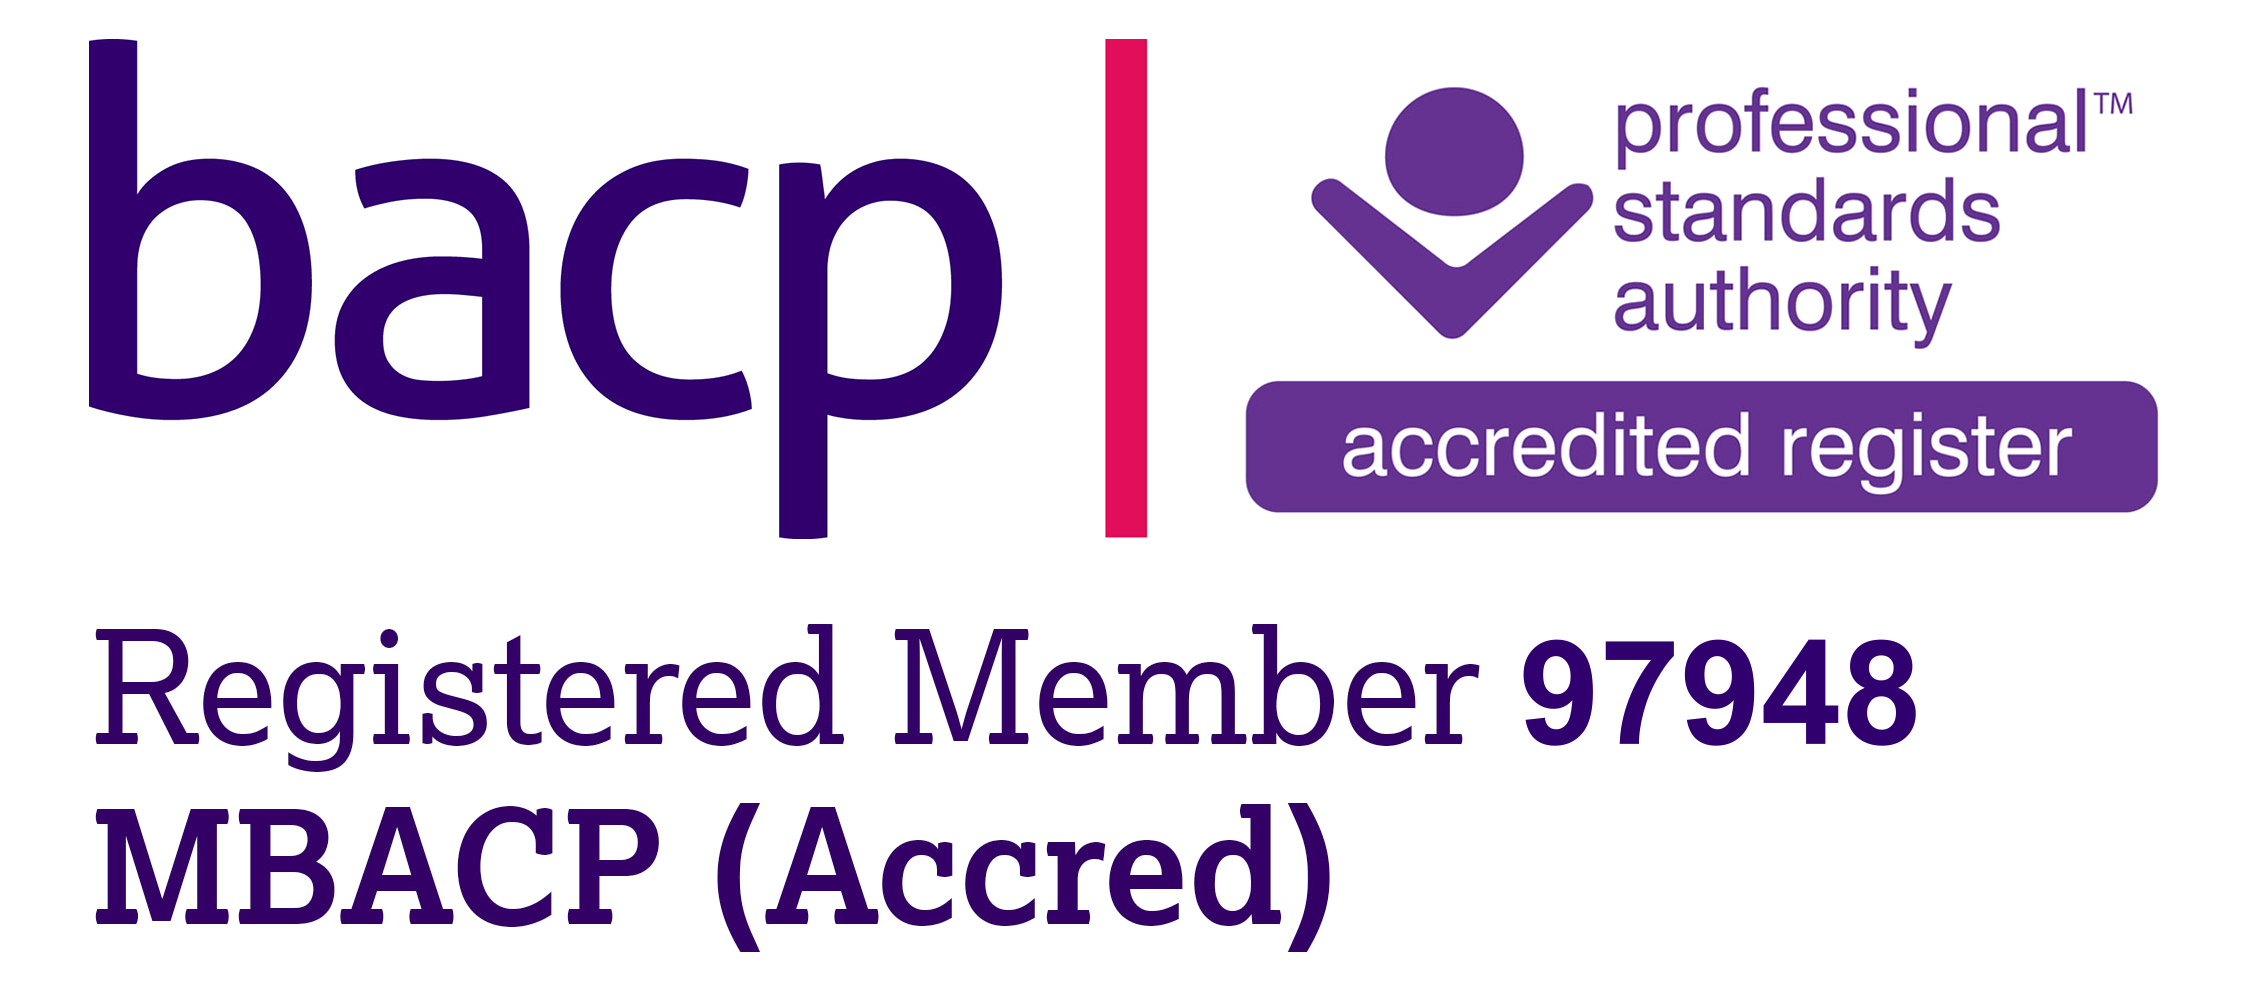 I am an accredited Registered Member ( no. 97948 ) of the British Association for Counselling and Psychotherapy (BACP),  The BACP register is accredited by the Professional Standards Authority for Health and Social Care.   Phone  01455 883300   Email   ask@bacp.co.uk    Website   www.bacp.co.uk